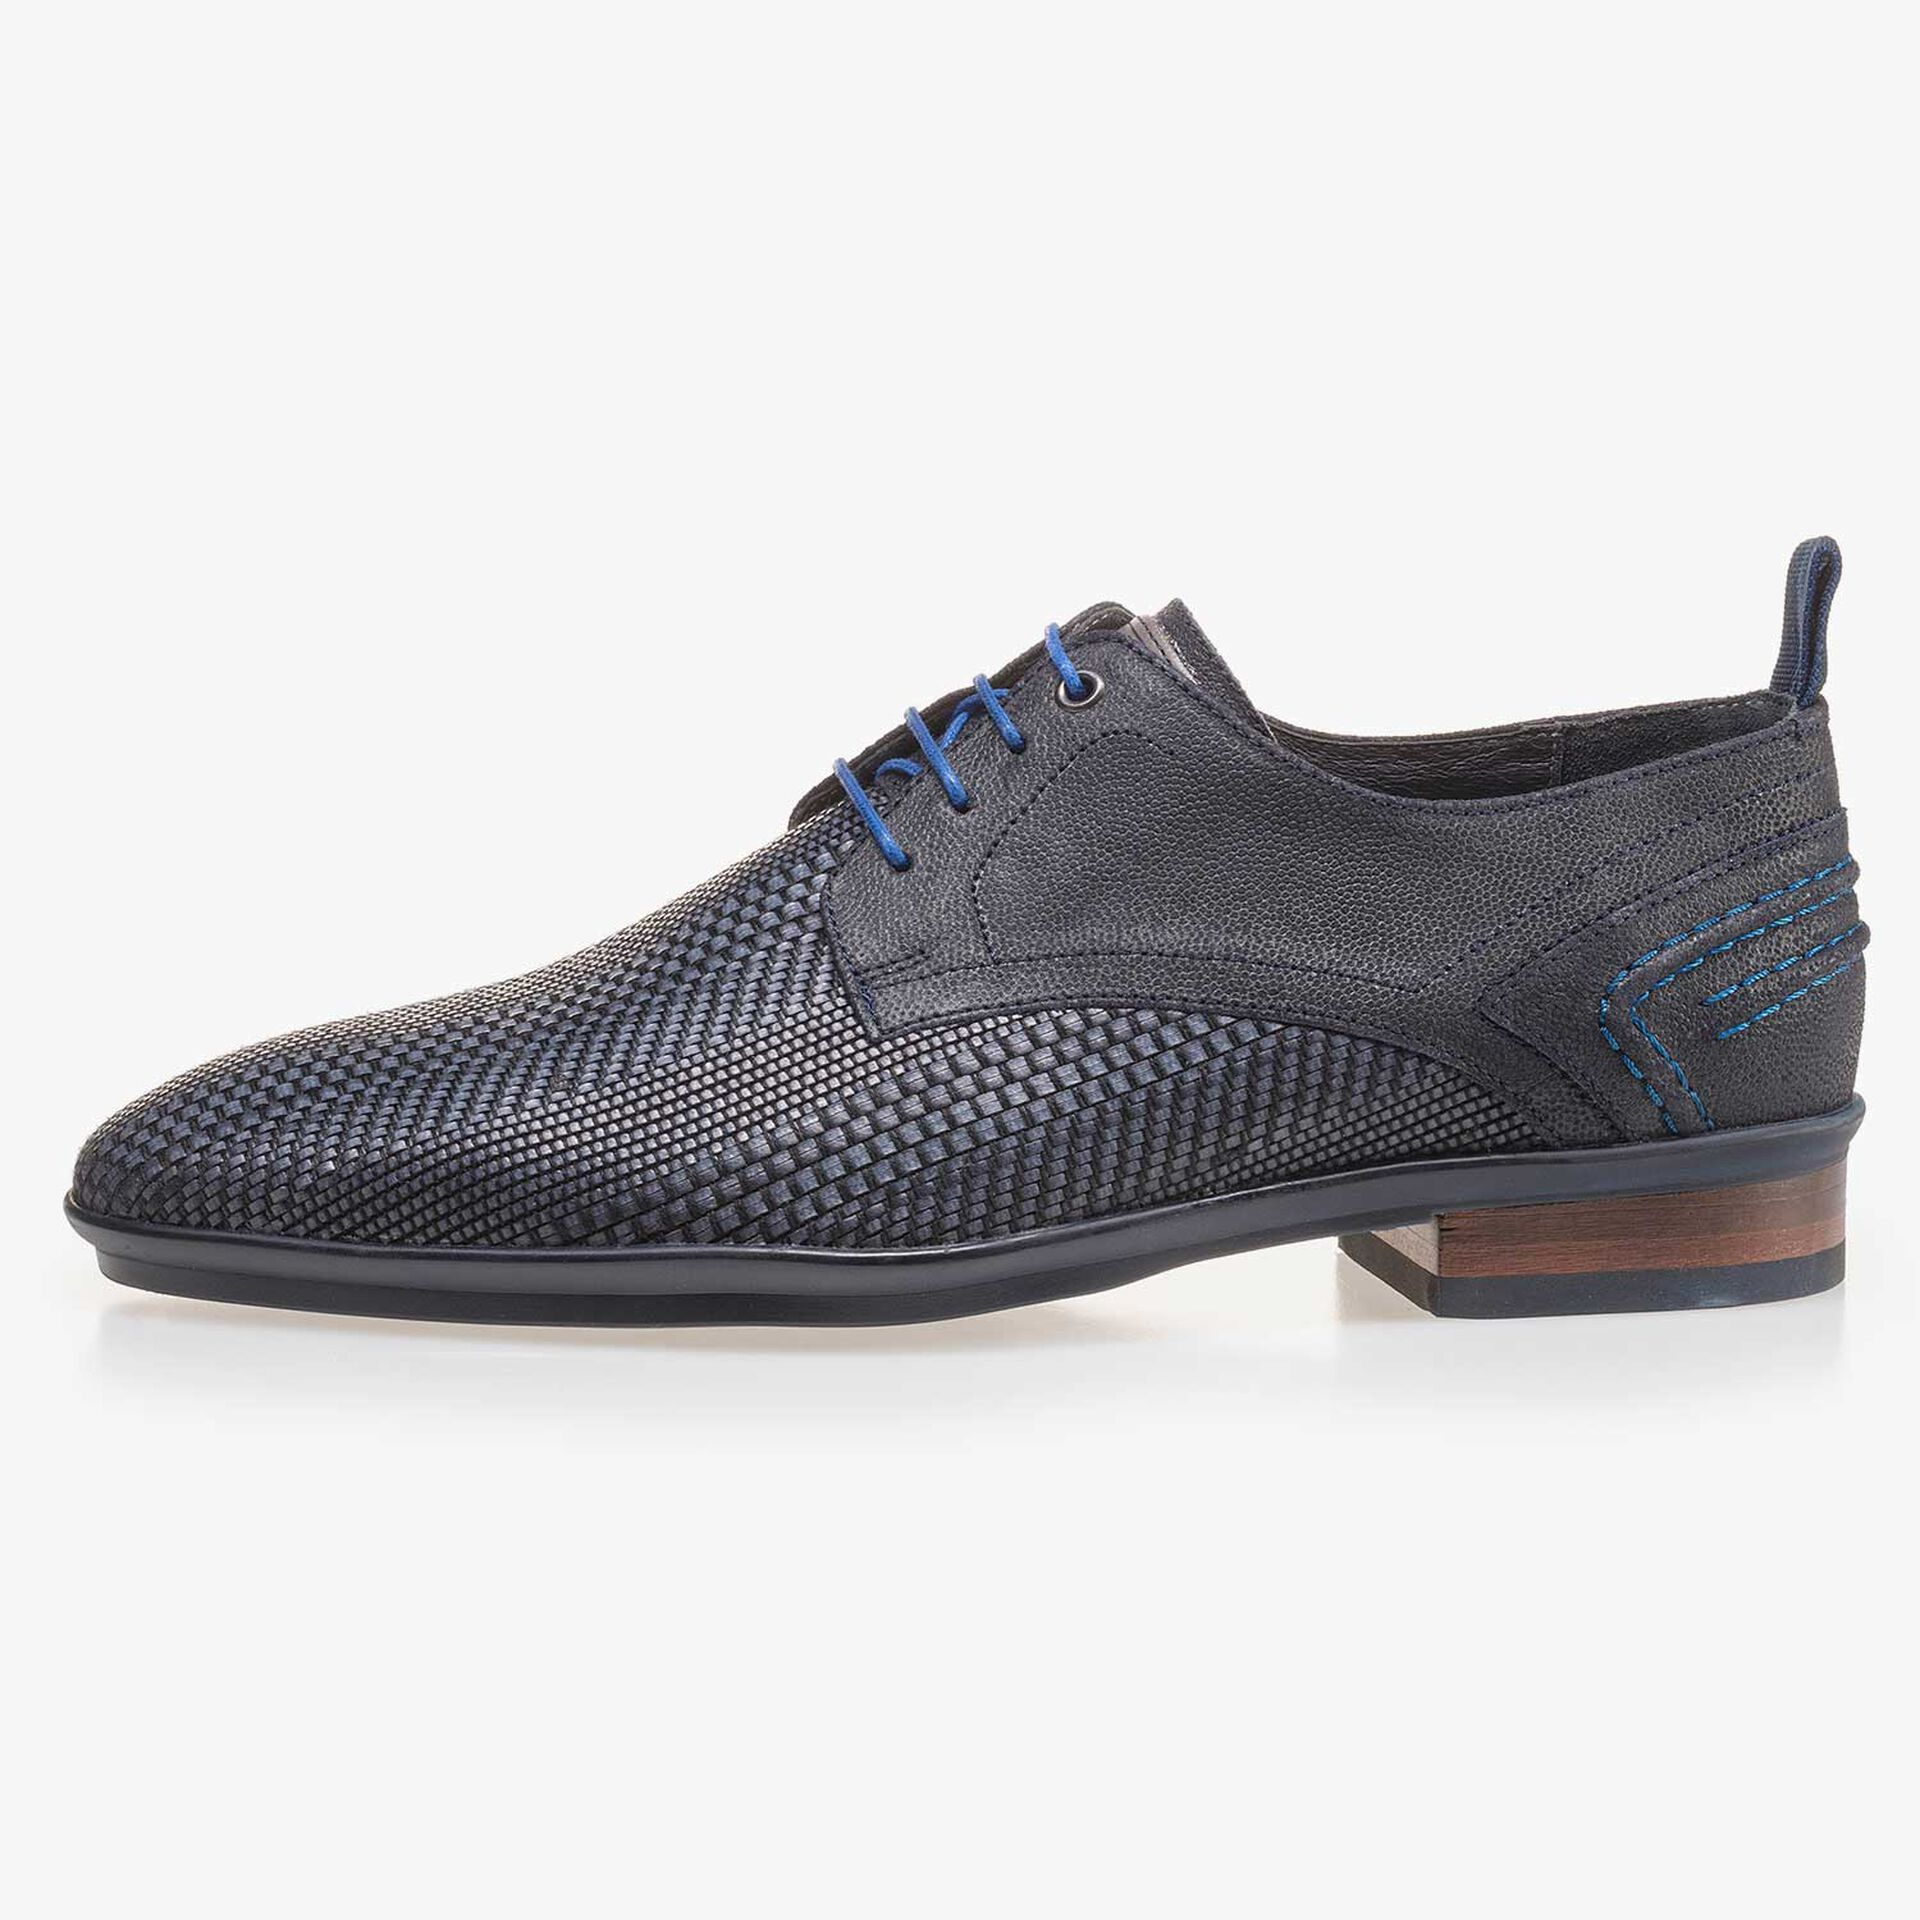 Blue lace shoe made of braided leather